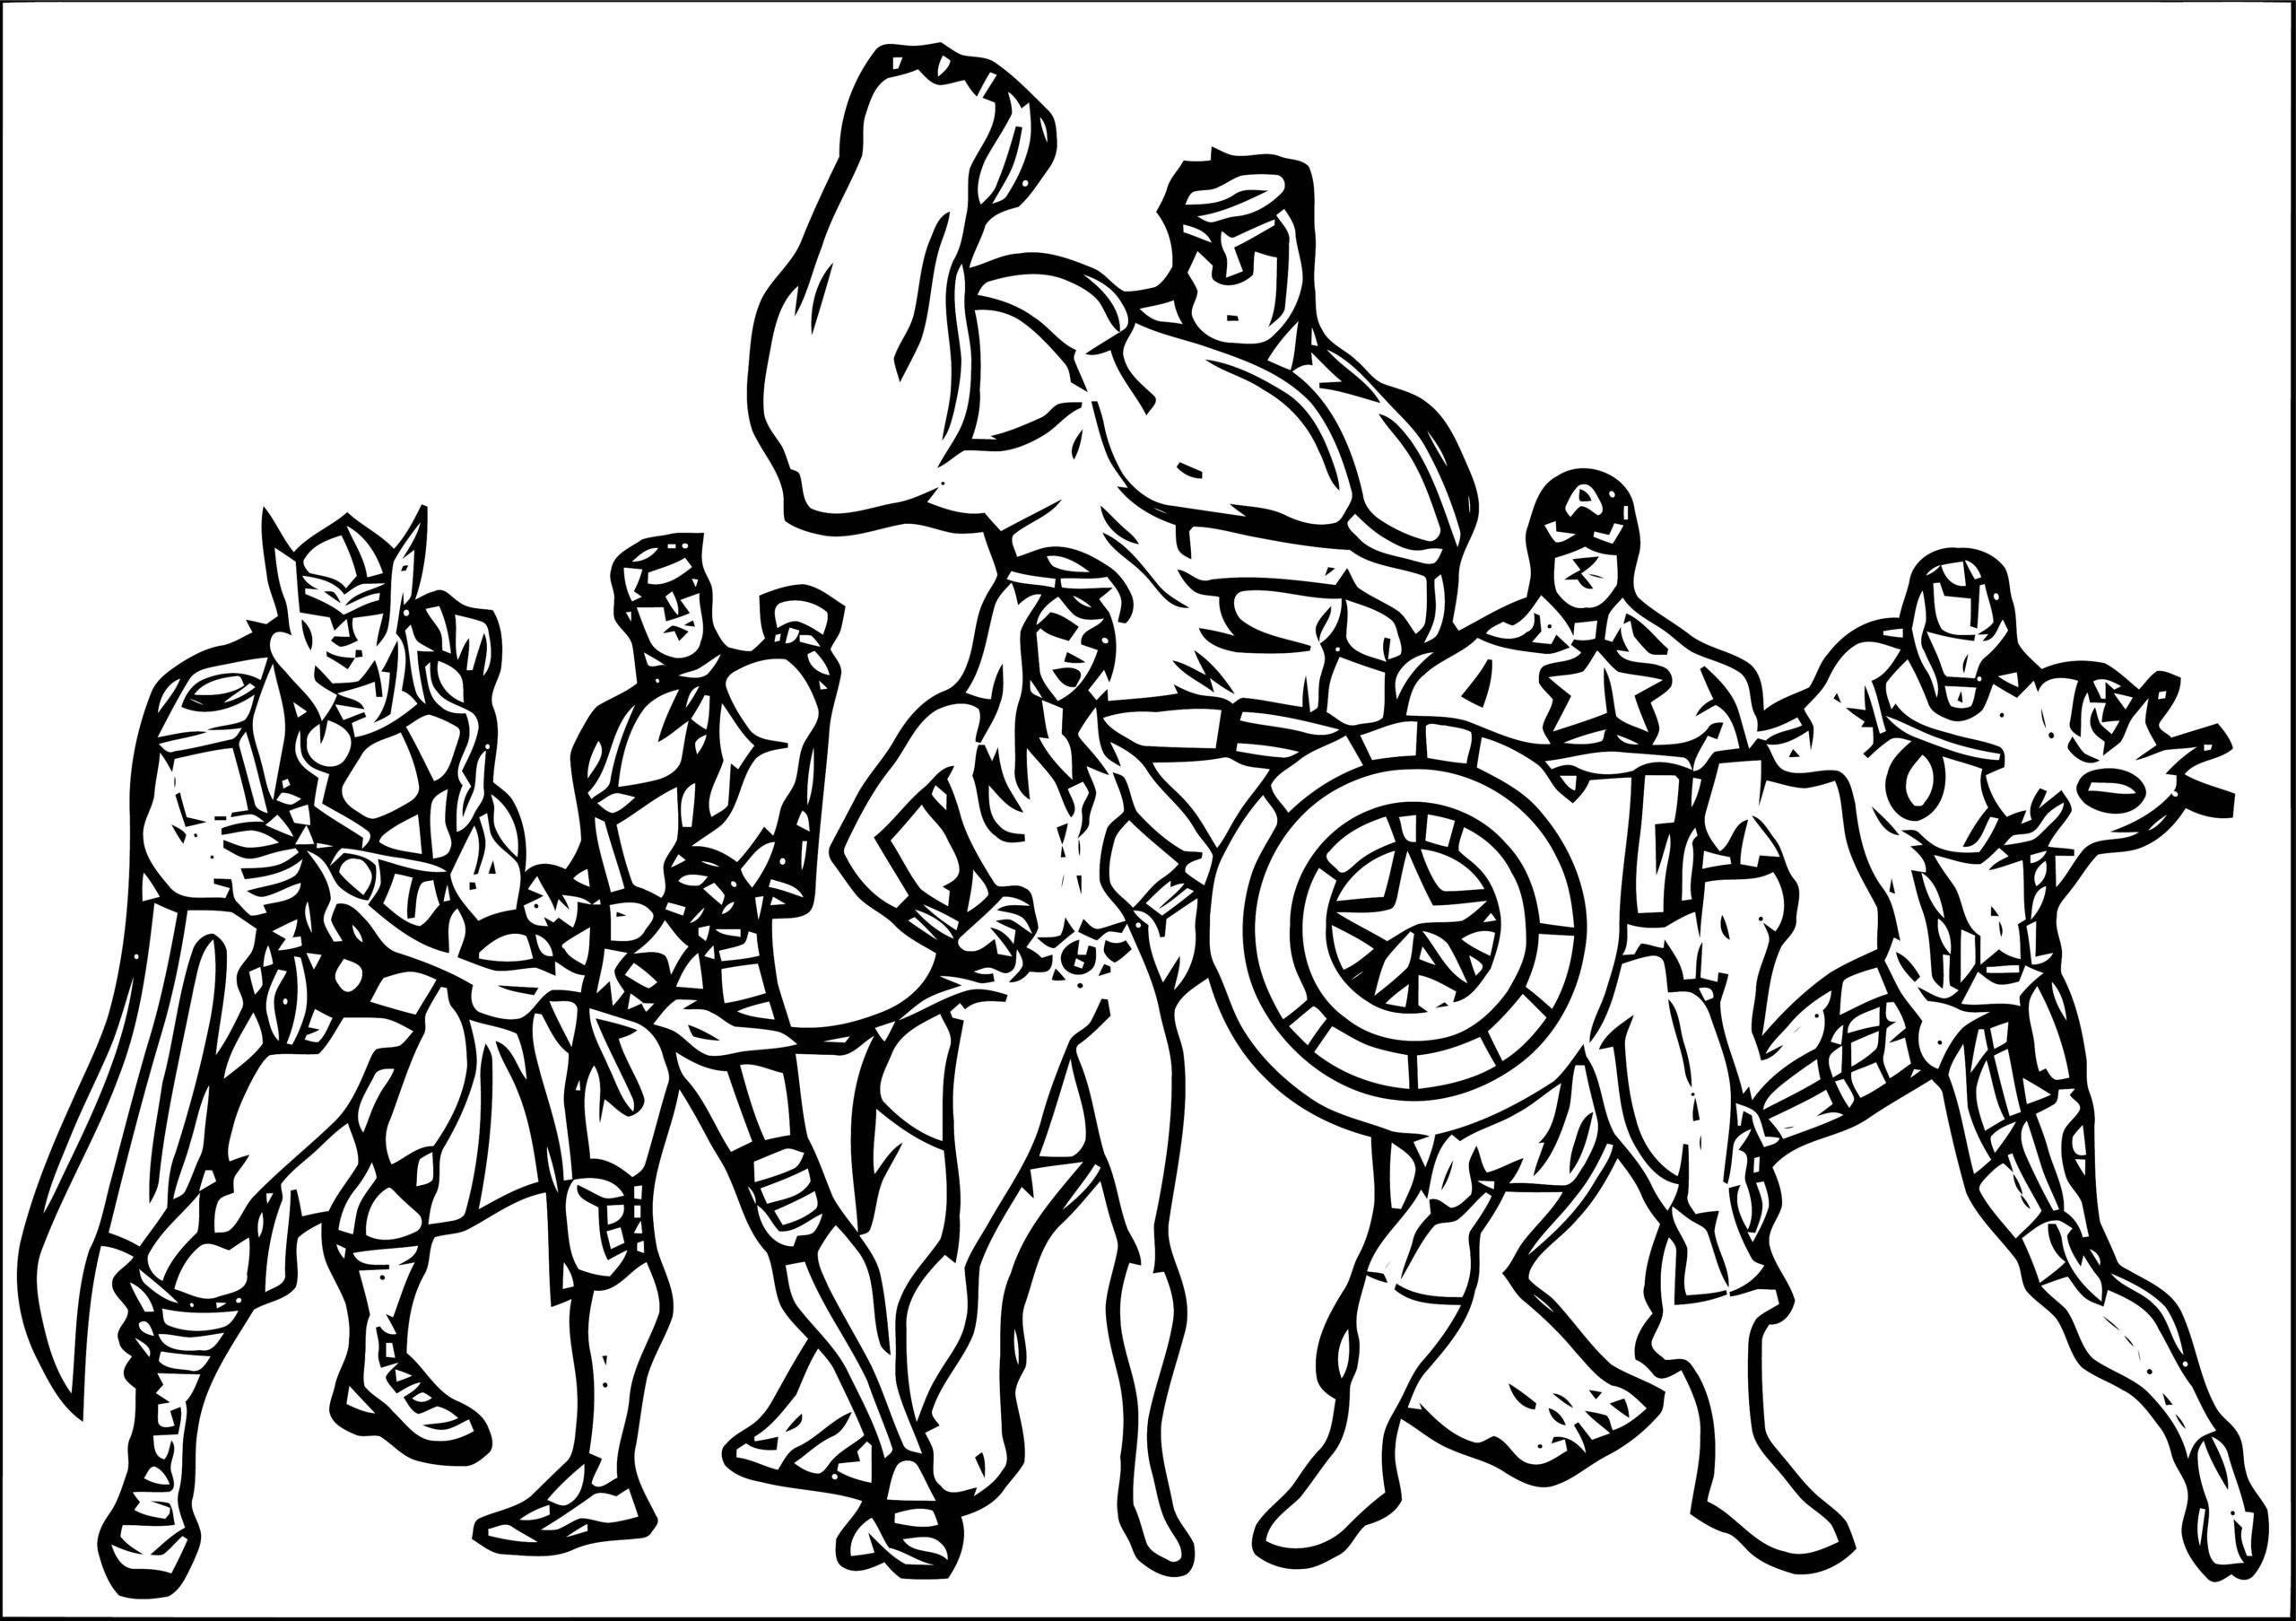 Avengers Coloring Pages Printable Free Avengers Coloring Avengers Coloring Pages Lego Coloring Pages